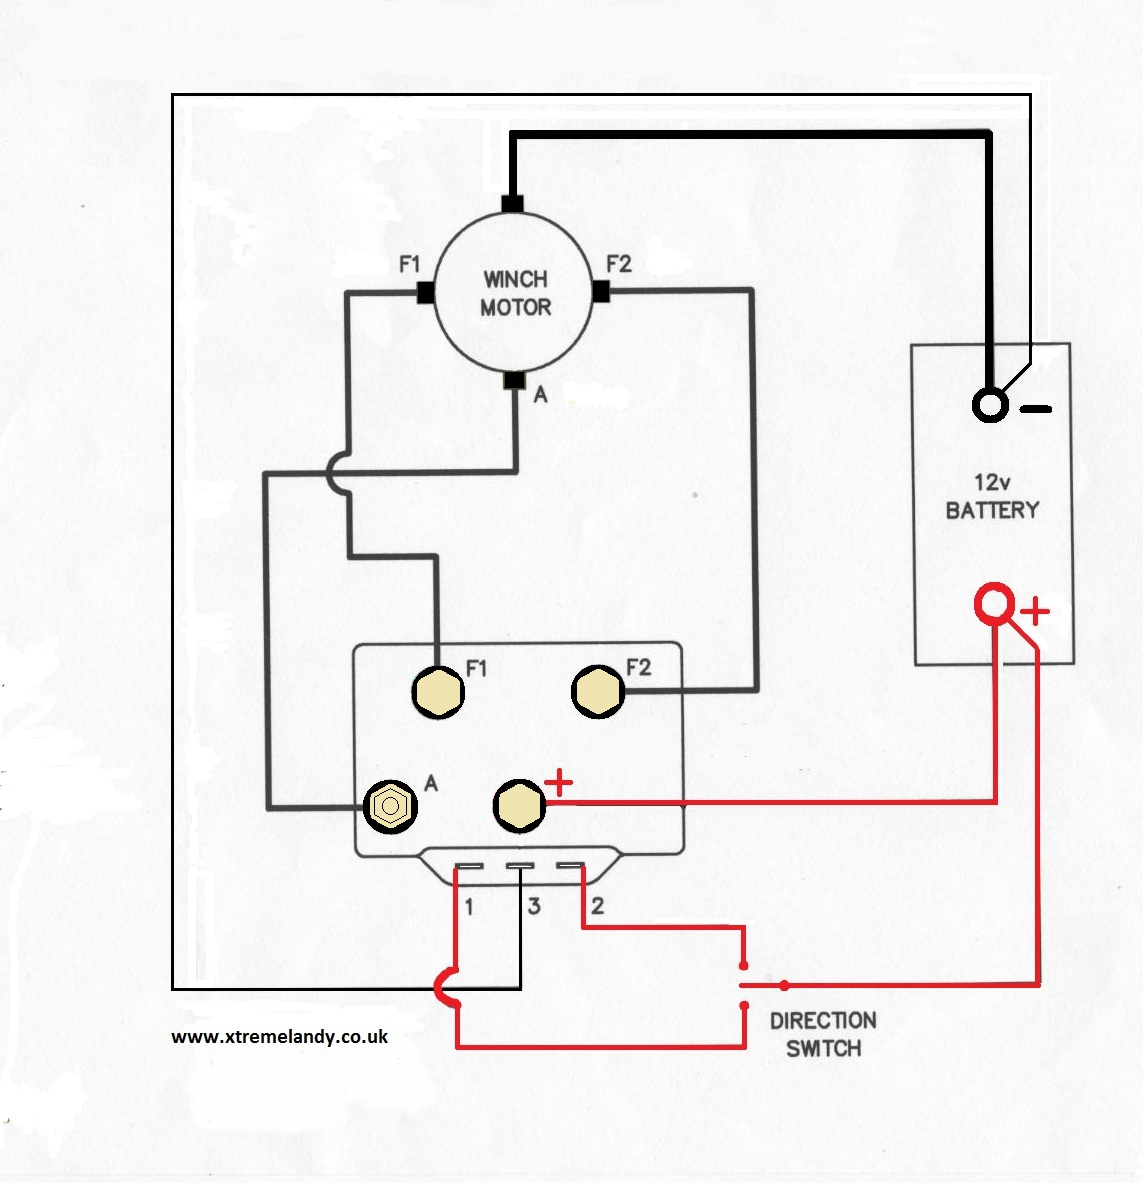 albright wiring diagram image downloadable manuals land rover discovery 1 wiring diagram pdf at soozxer.org